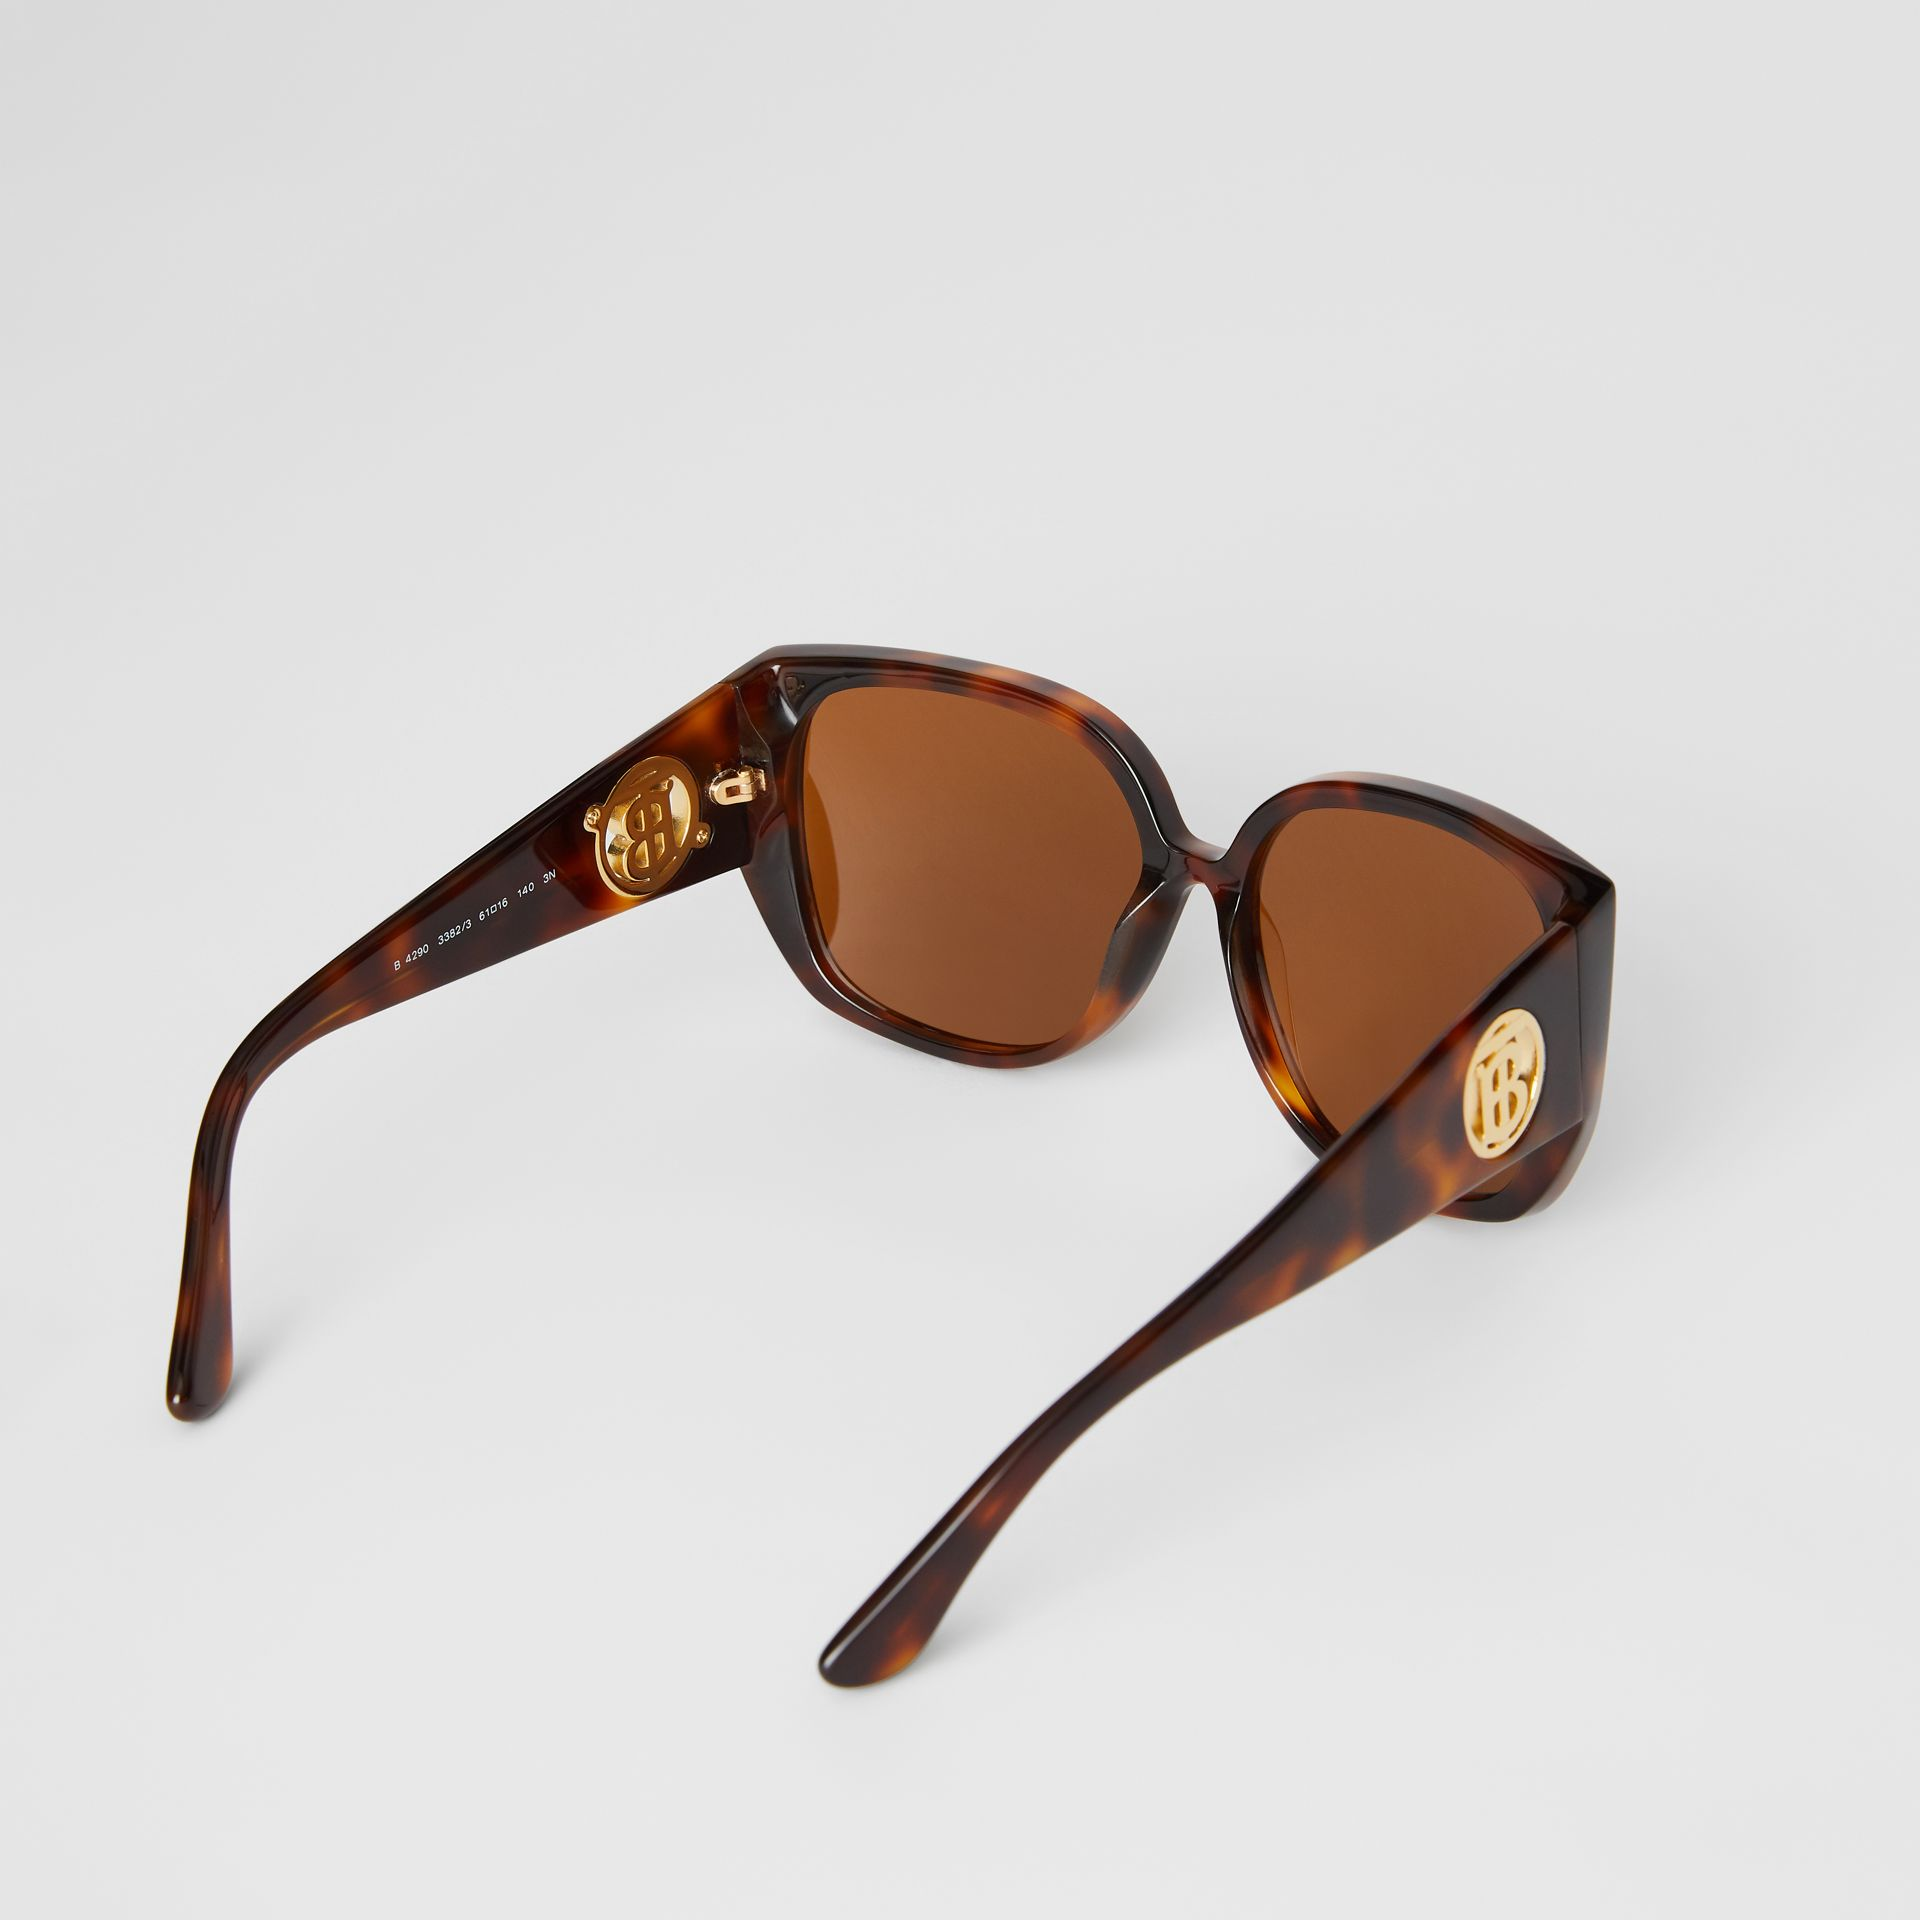 Oversized Butterfly Frame Sunglasses in Tortoiseshell - Women | Burberry Singapore - gallery image 4